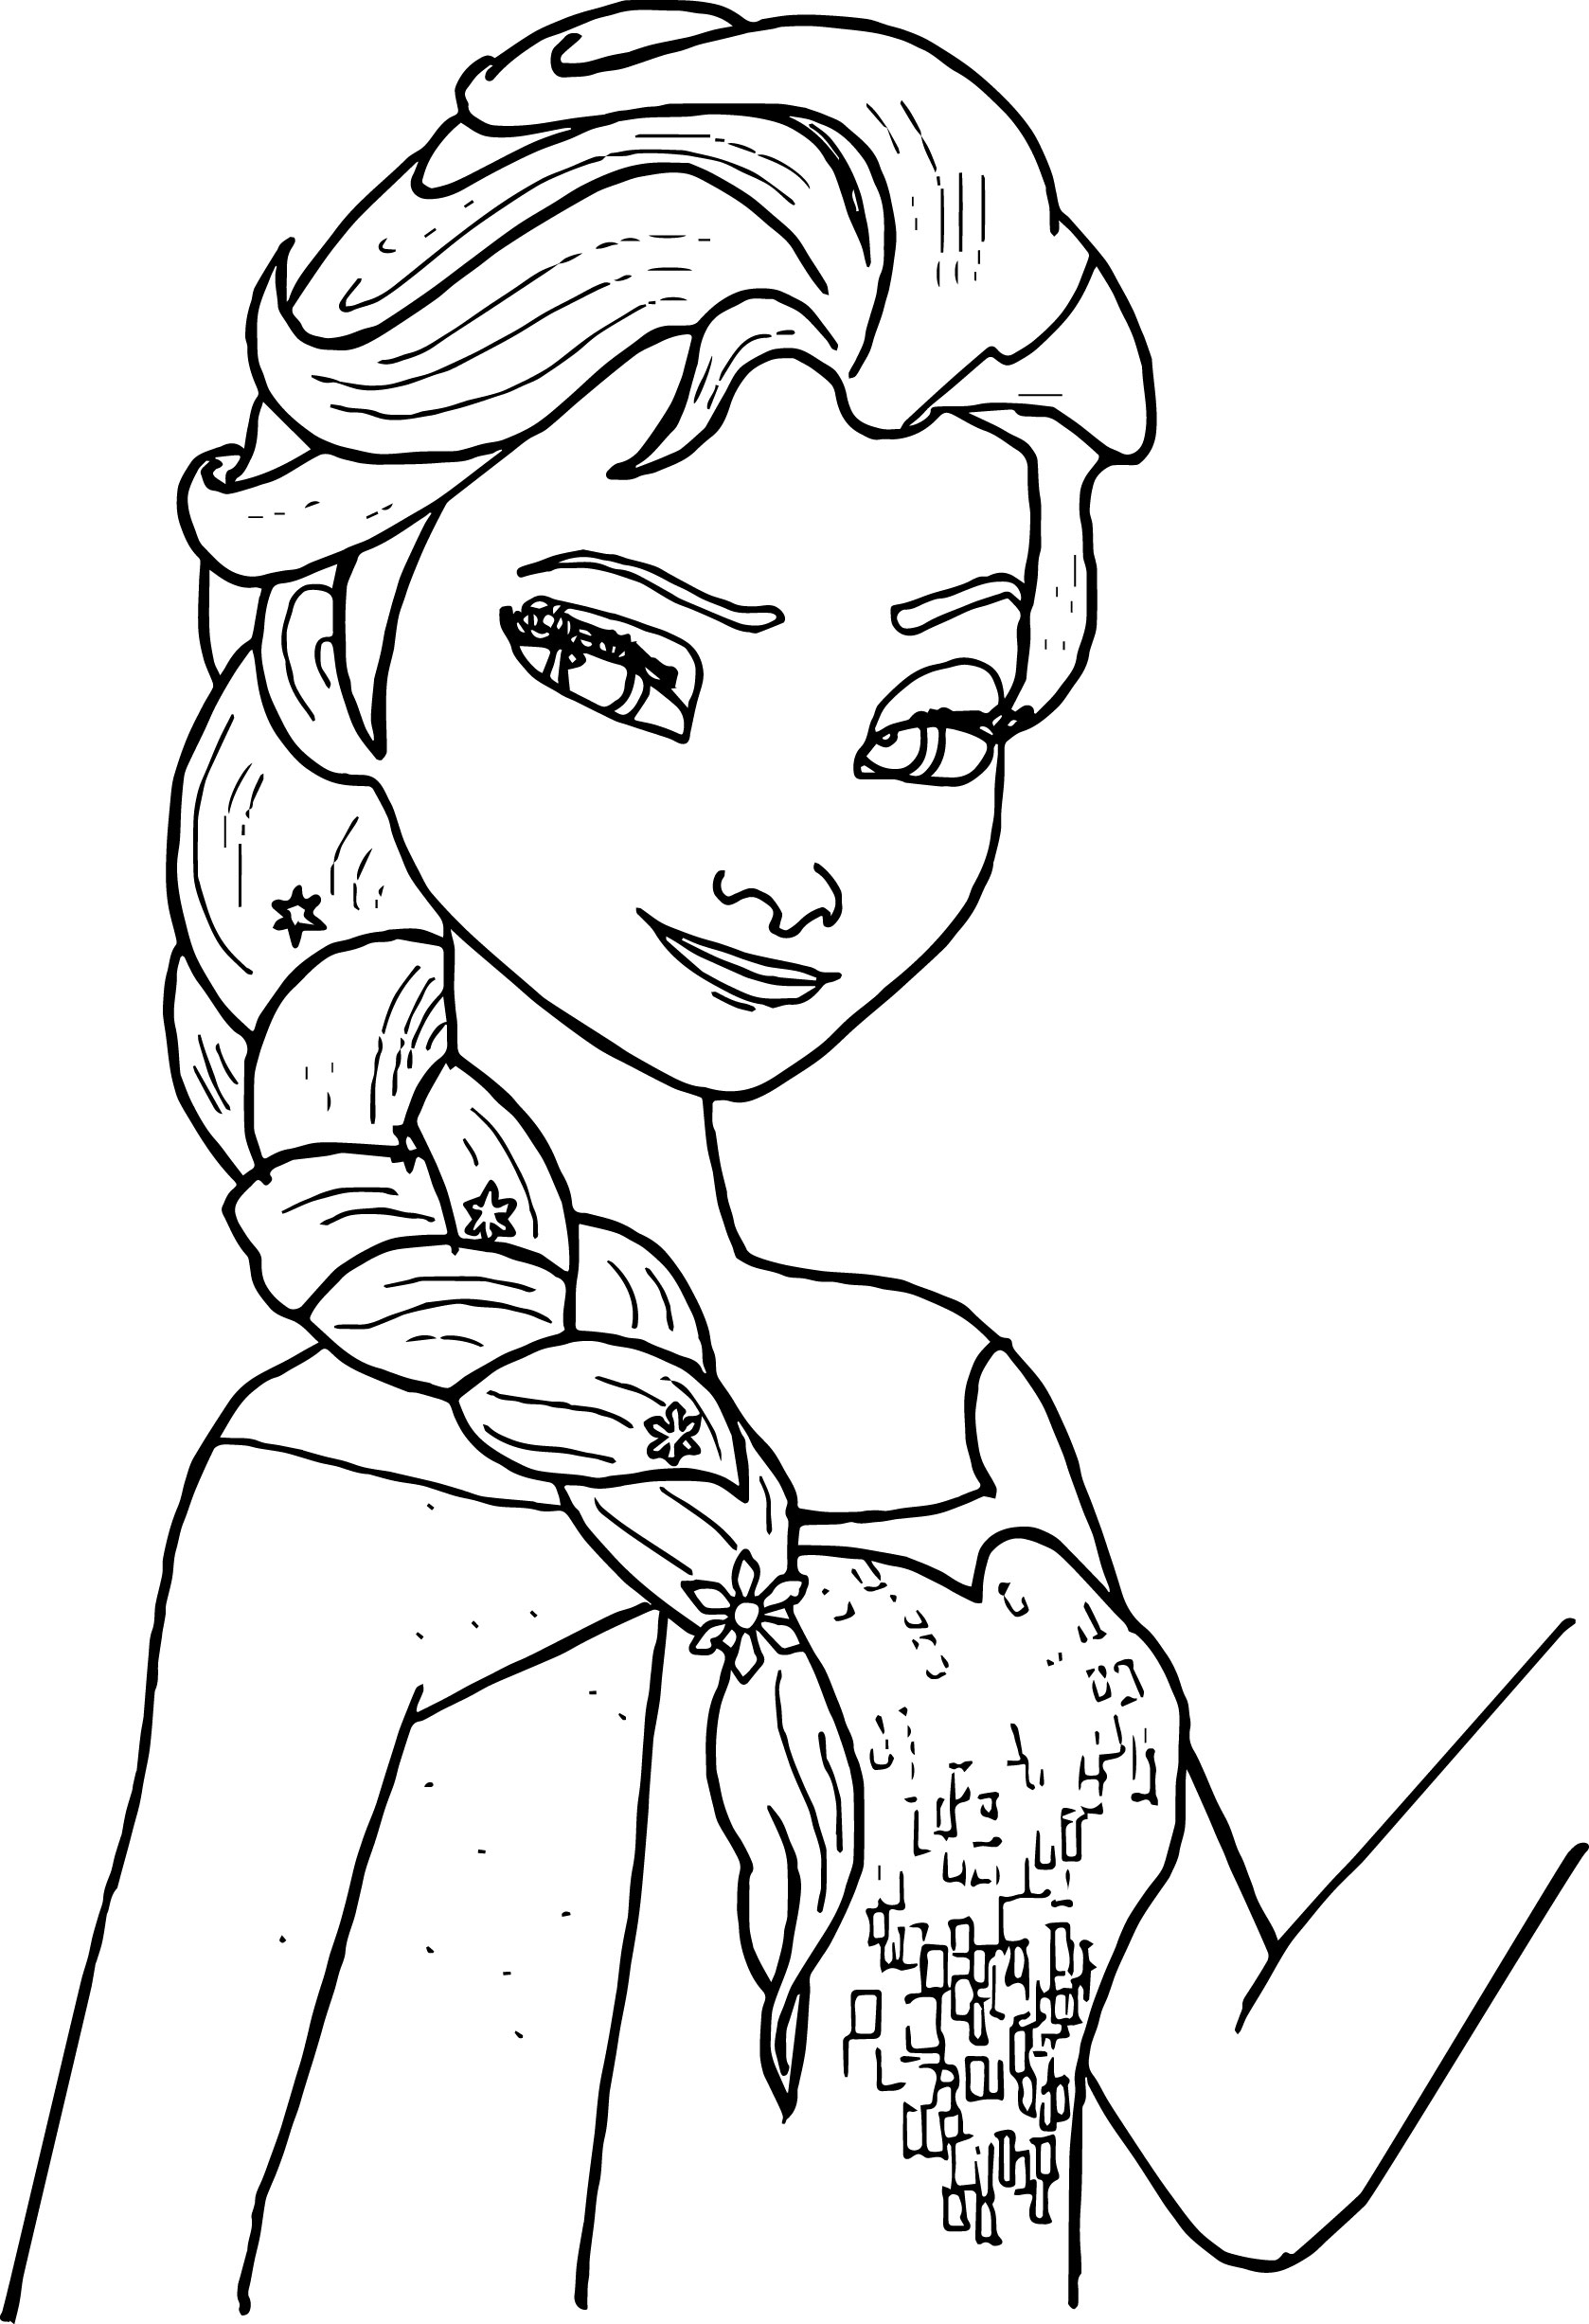 elsa head coloring pages | Elsa Castle Drawing at GetDrawings.com | Free for personal ...